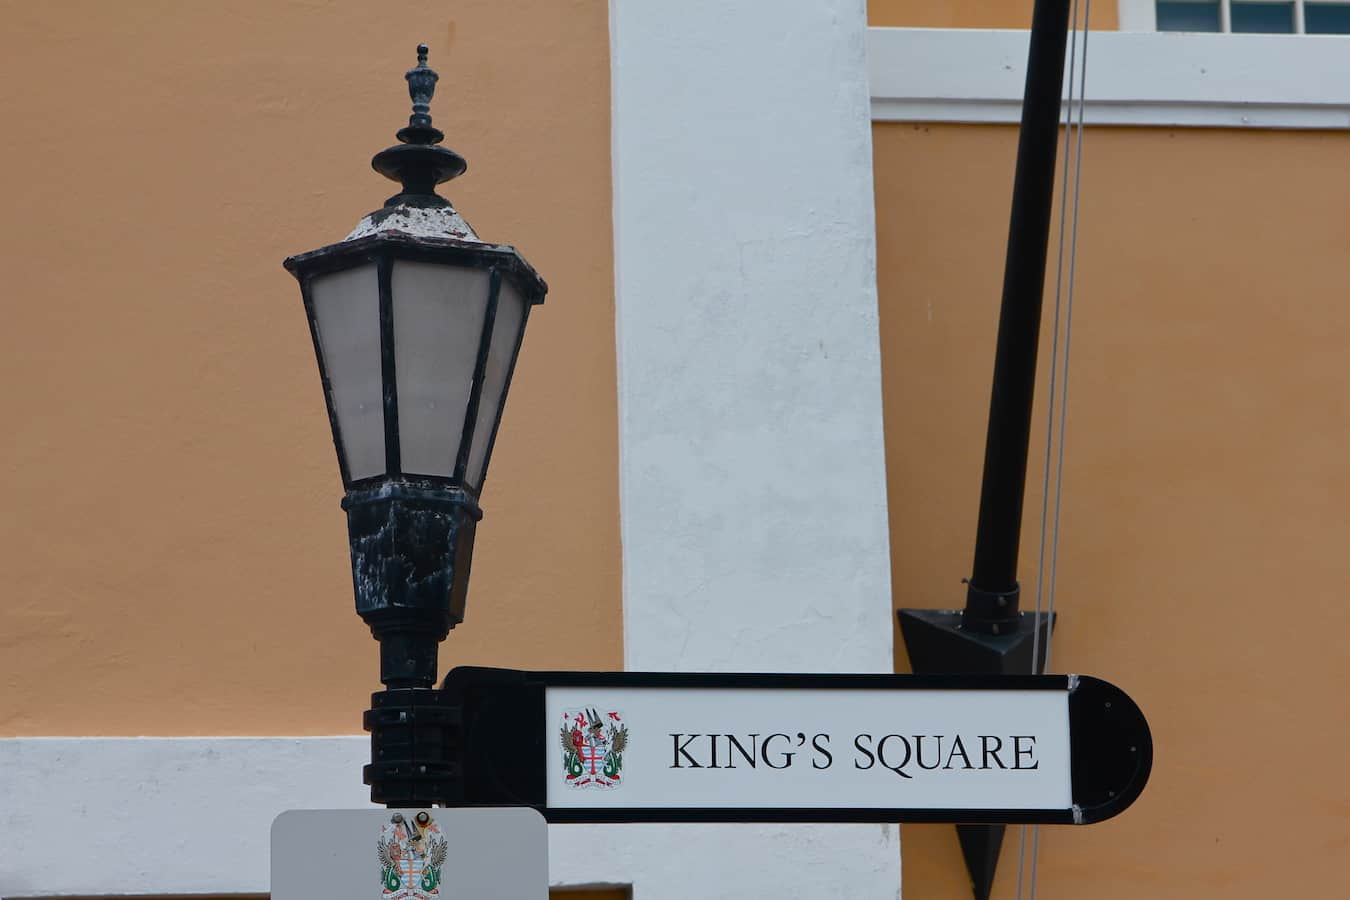 Kings_Square_St_George_Bermuda